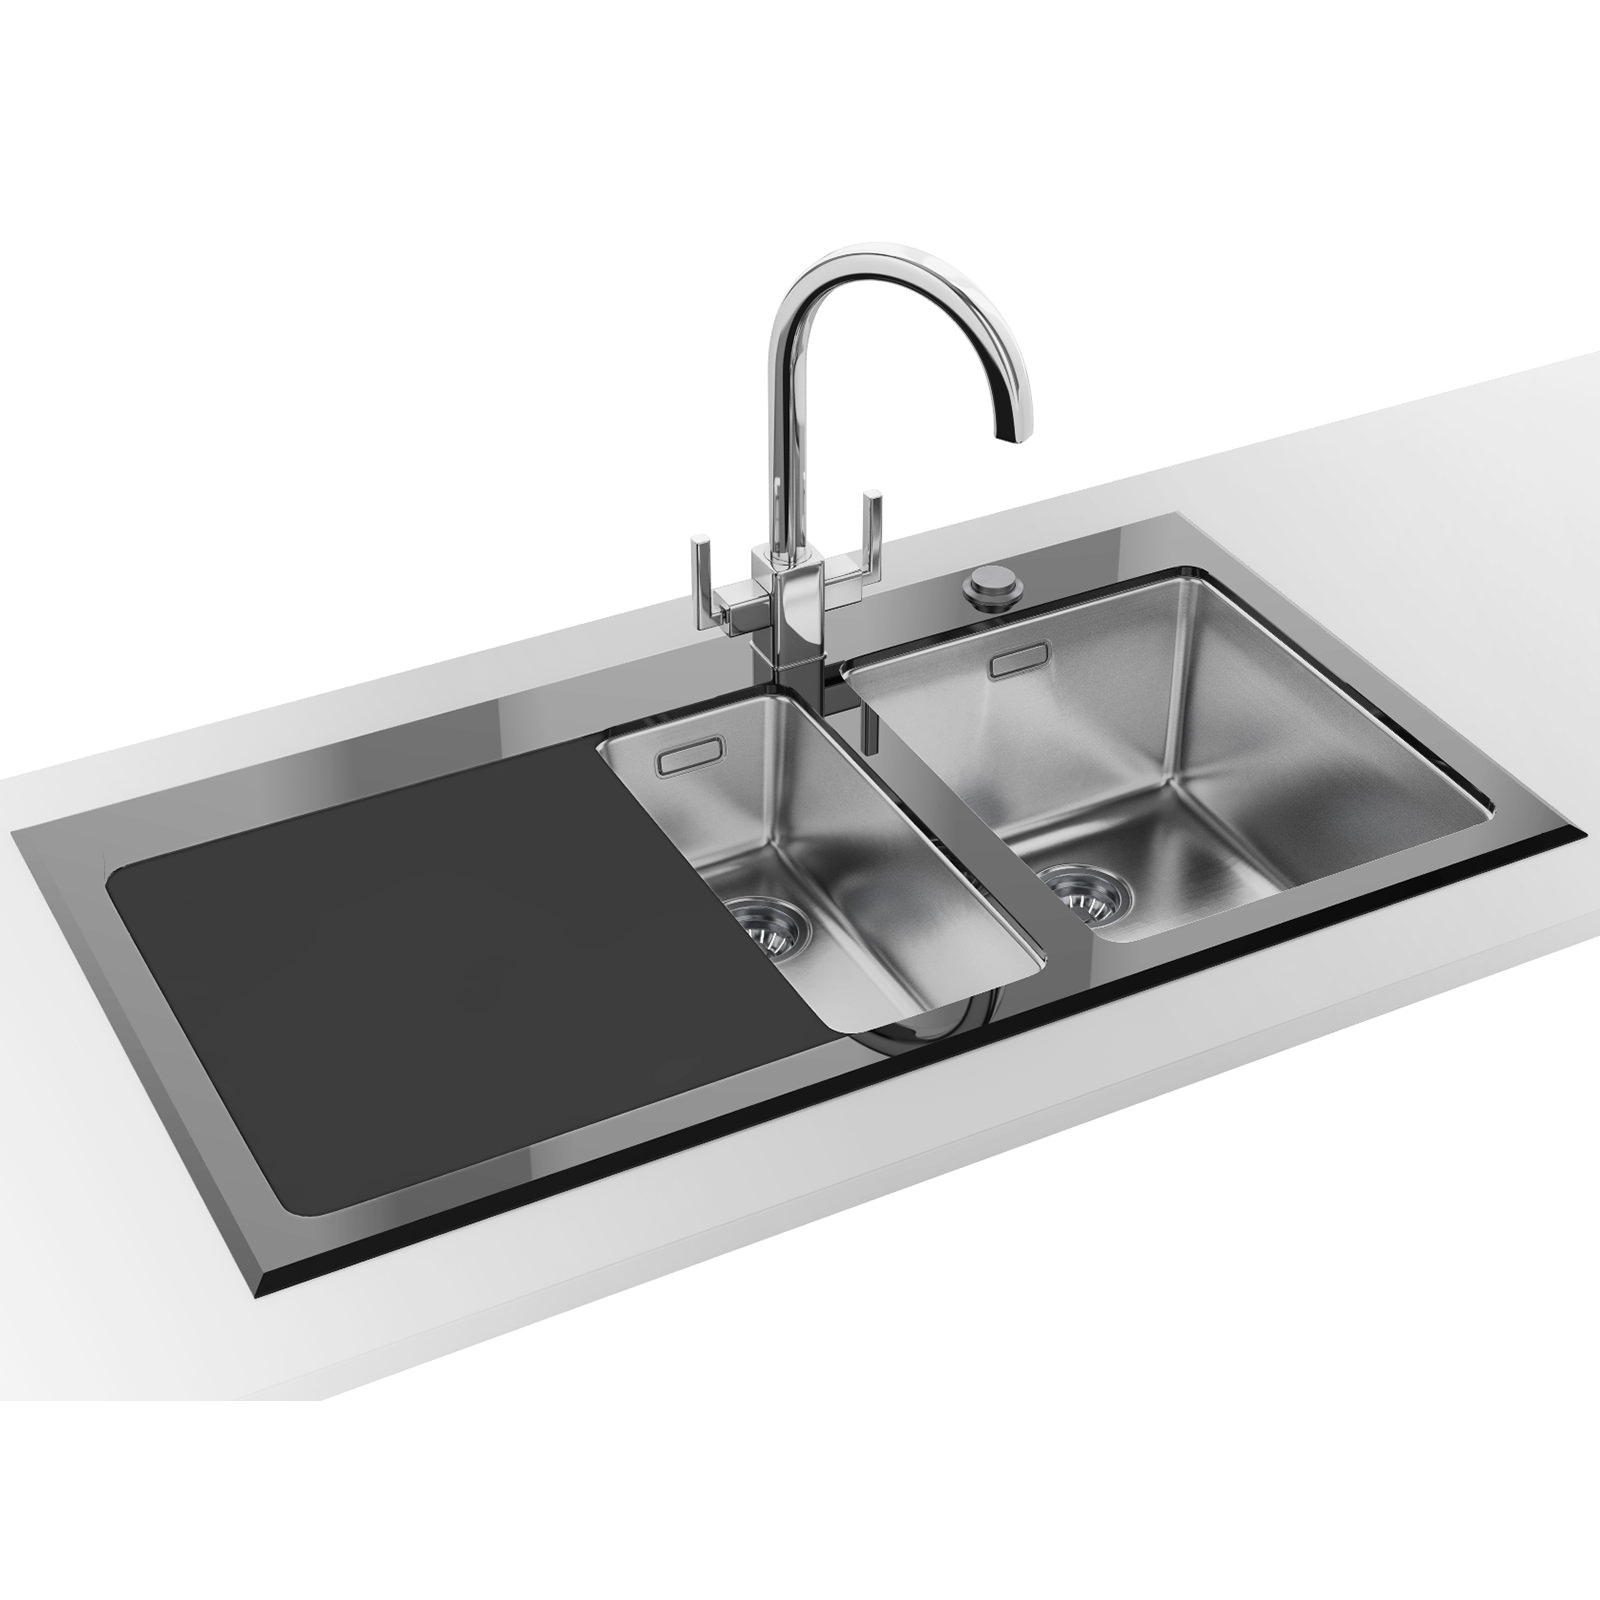 Black Stainless Steel Glass Sinks